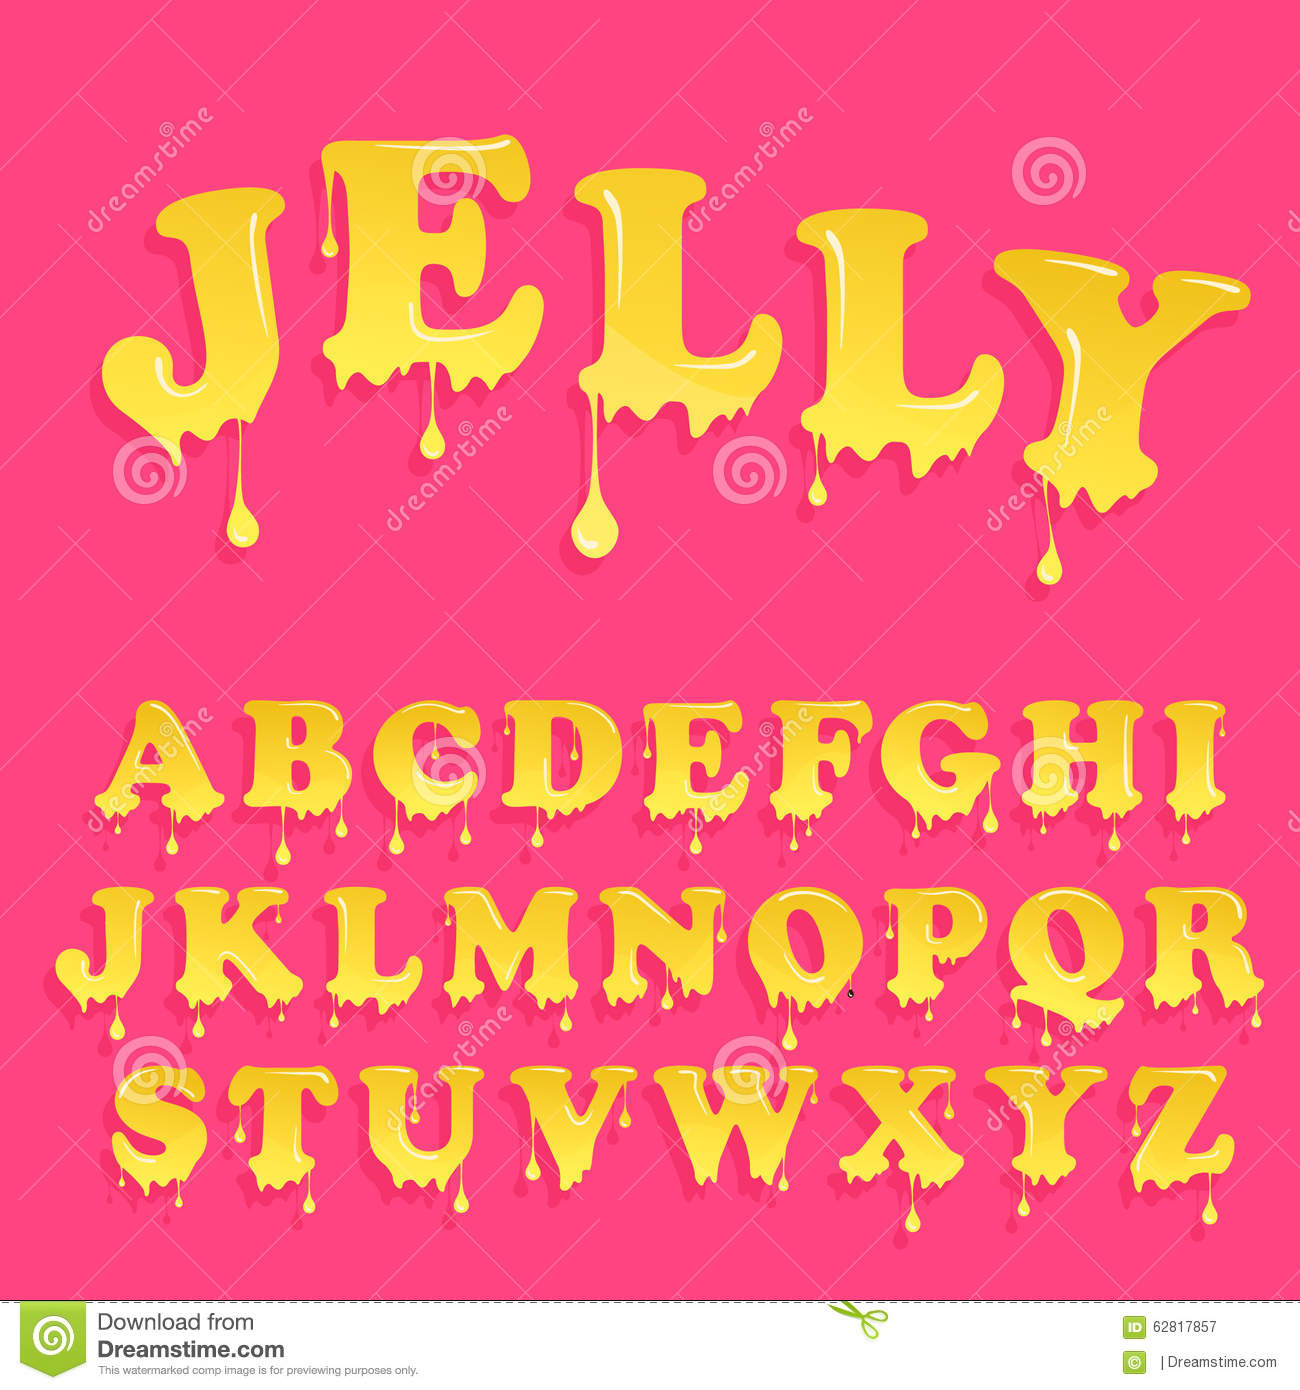 Alphabet letter s dripping in honey clipart - ClipartFox png library download